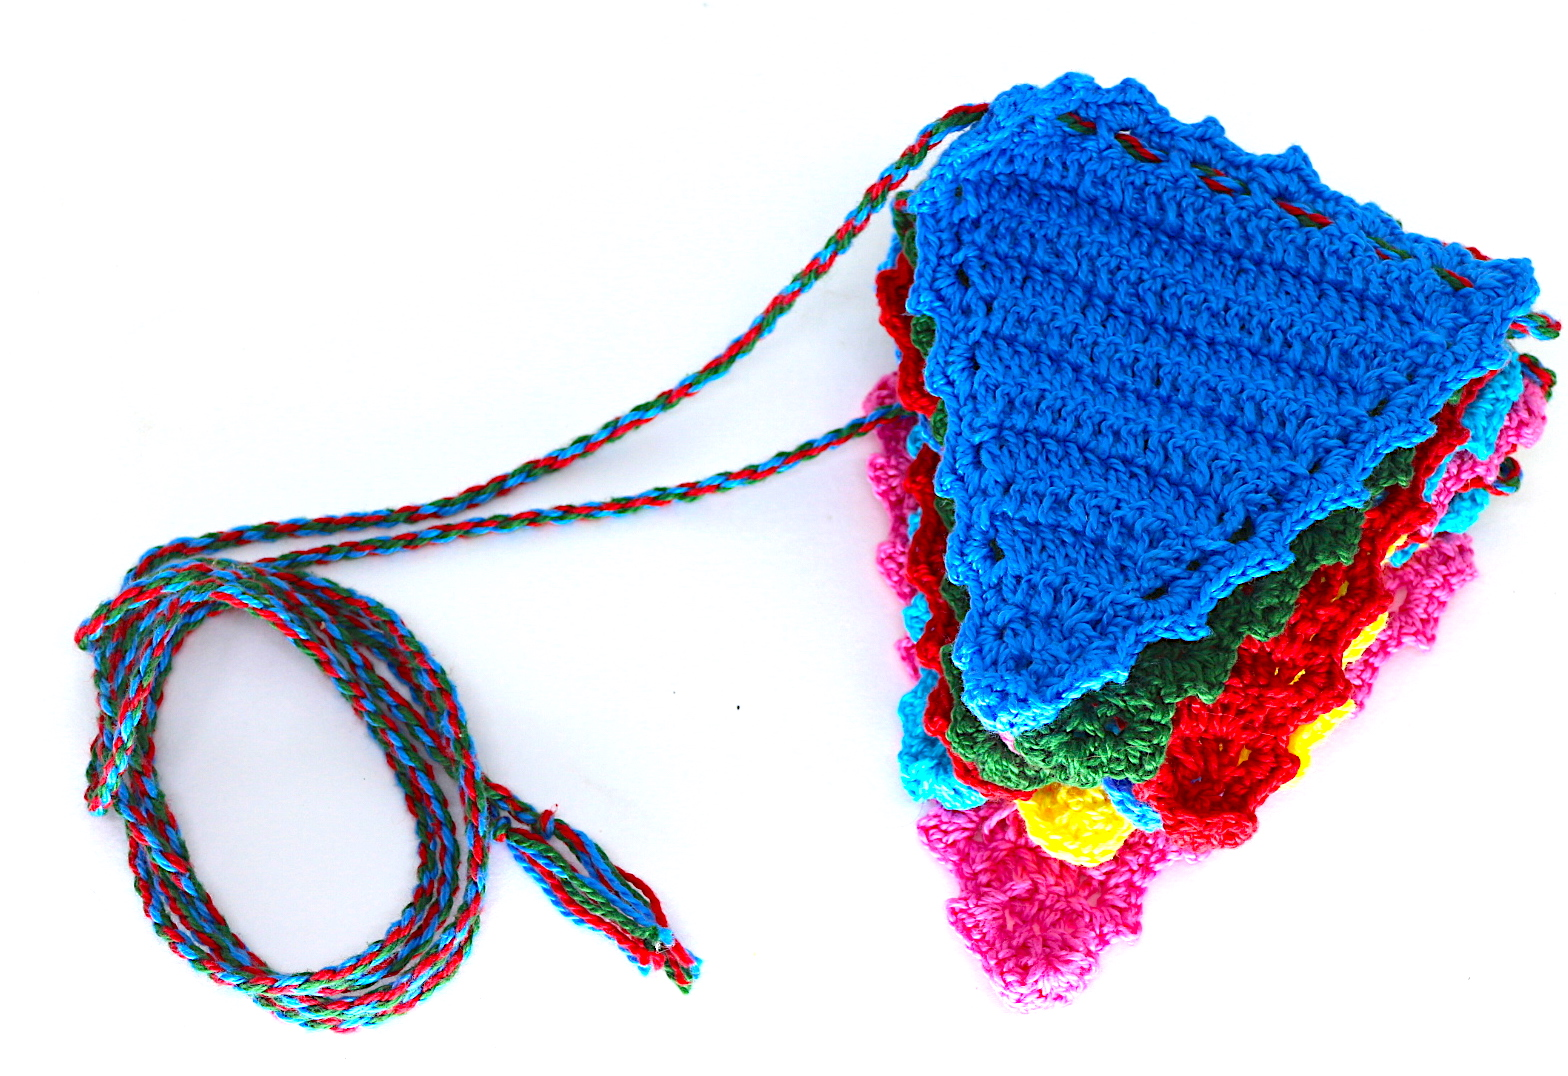 Banderola colorida crochet.JPG